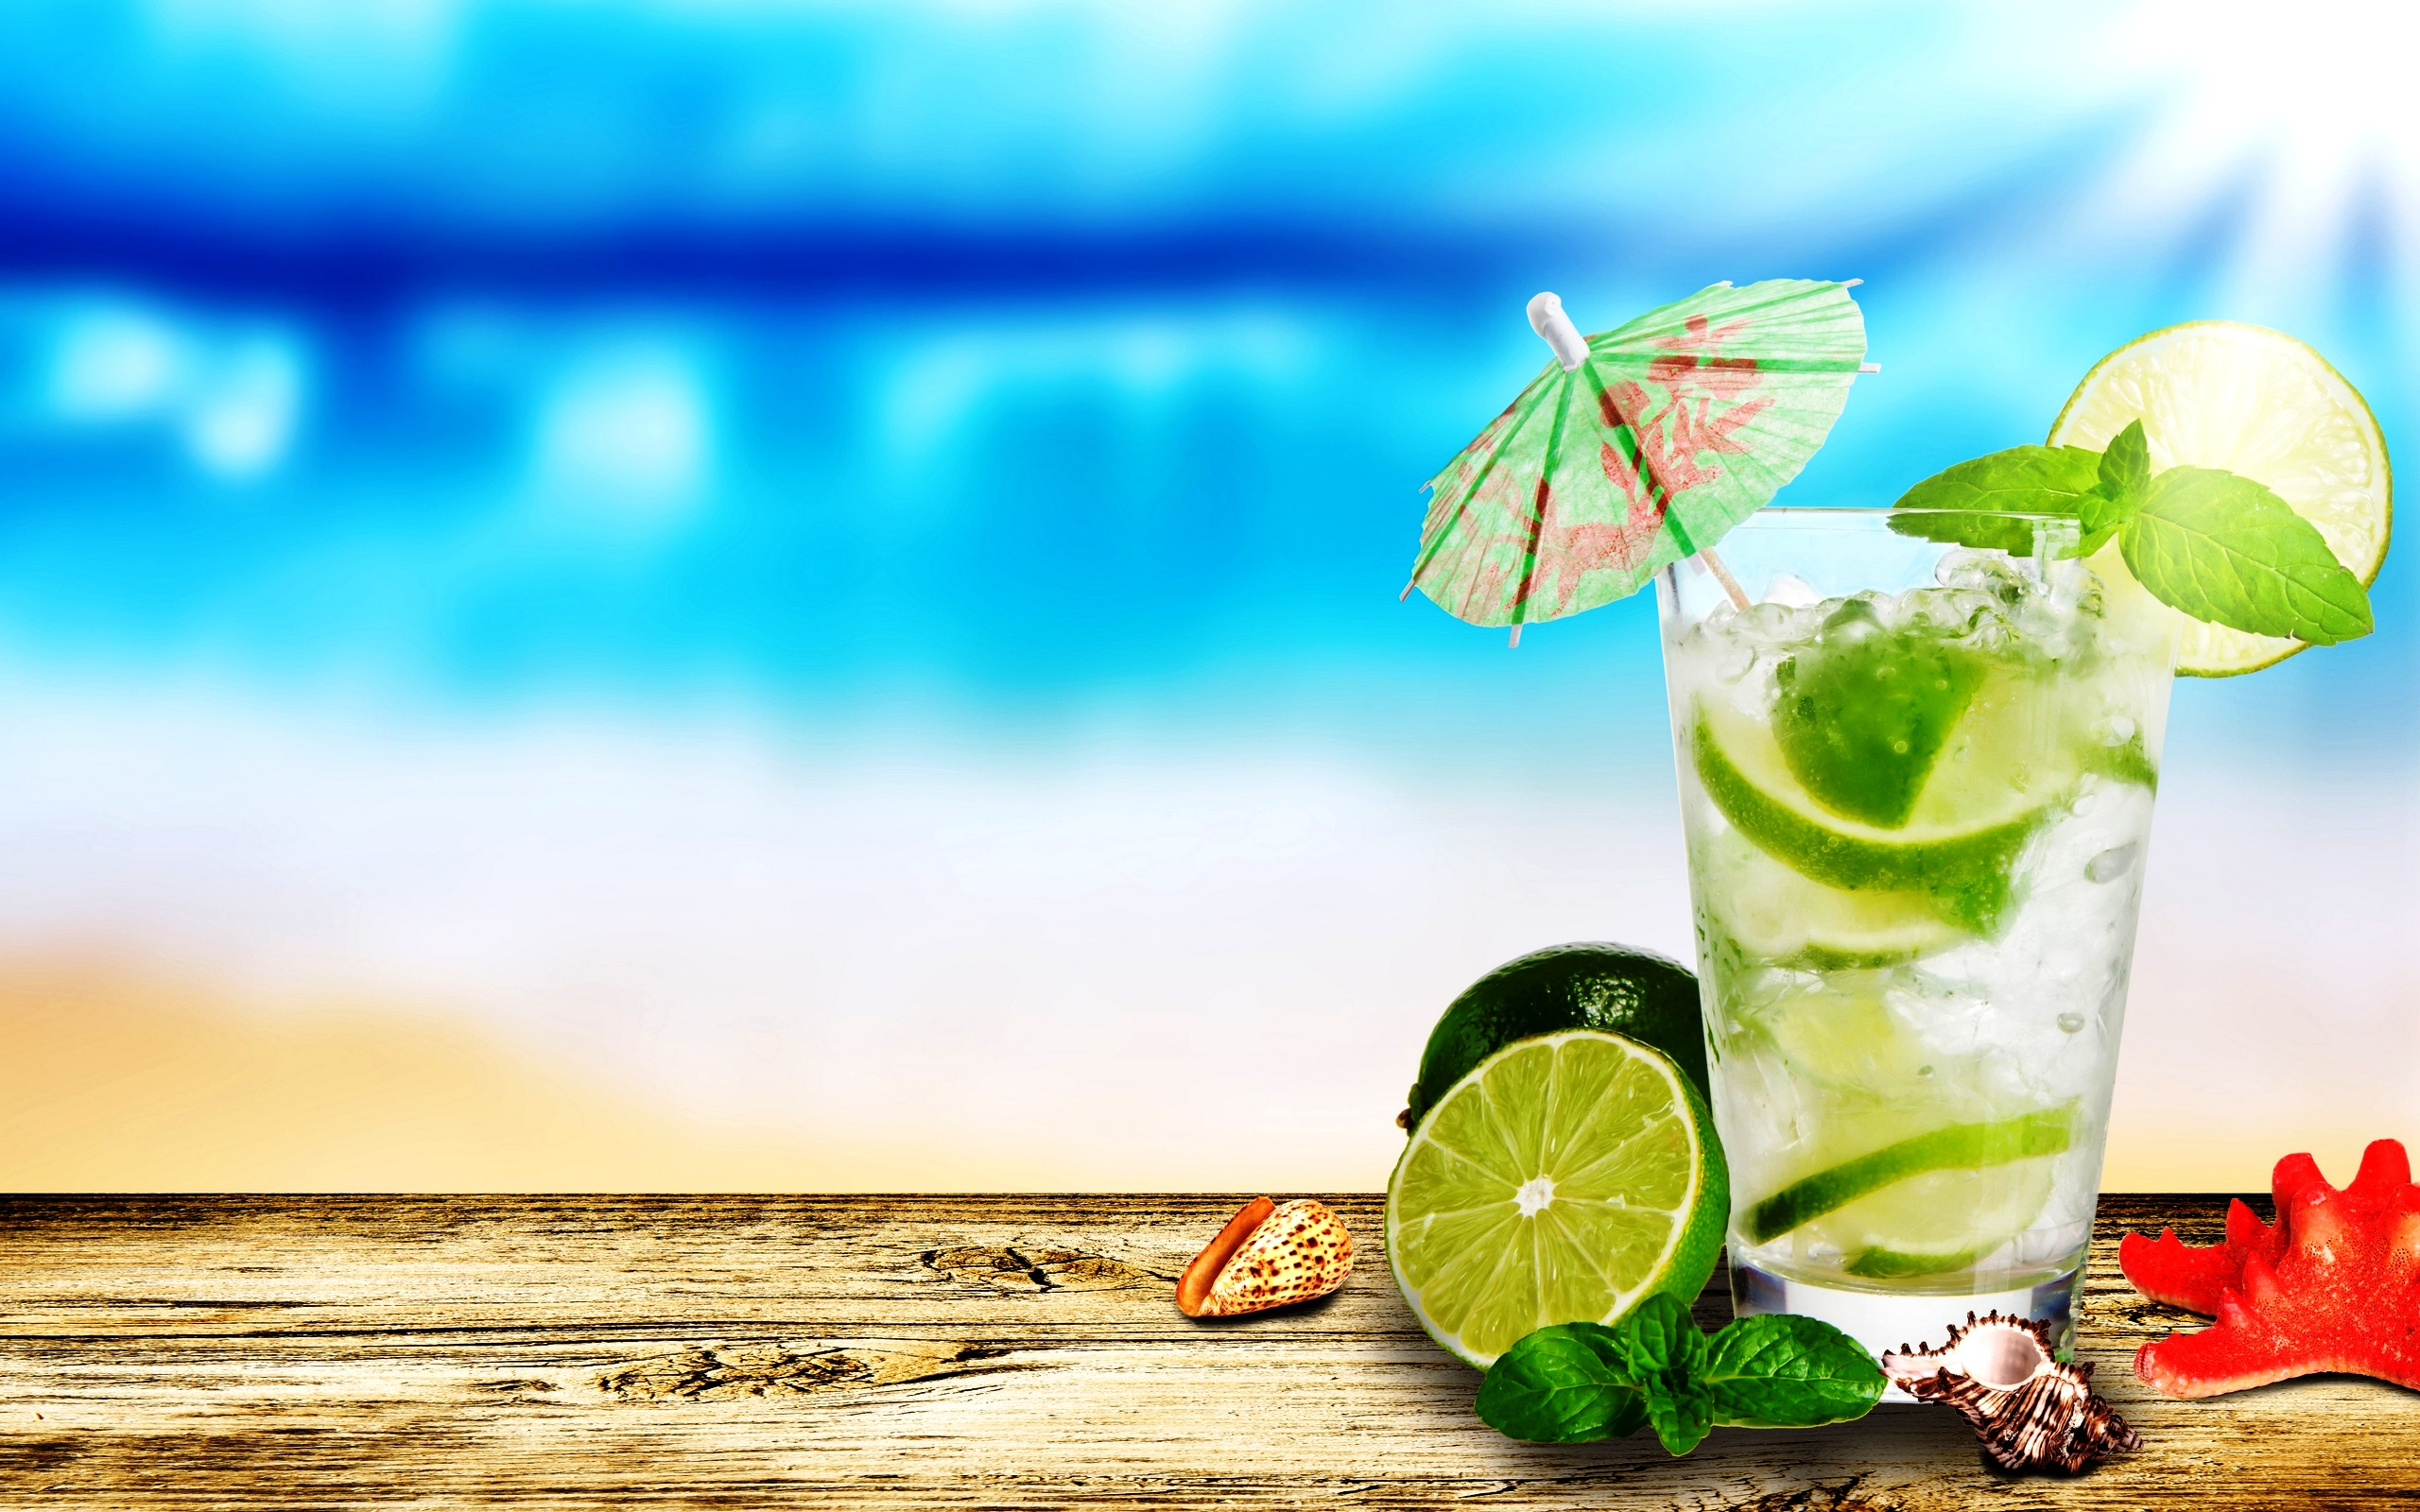 Summer Screensavers And Wallpaper Cocktail photos of 2560x1600